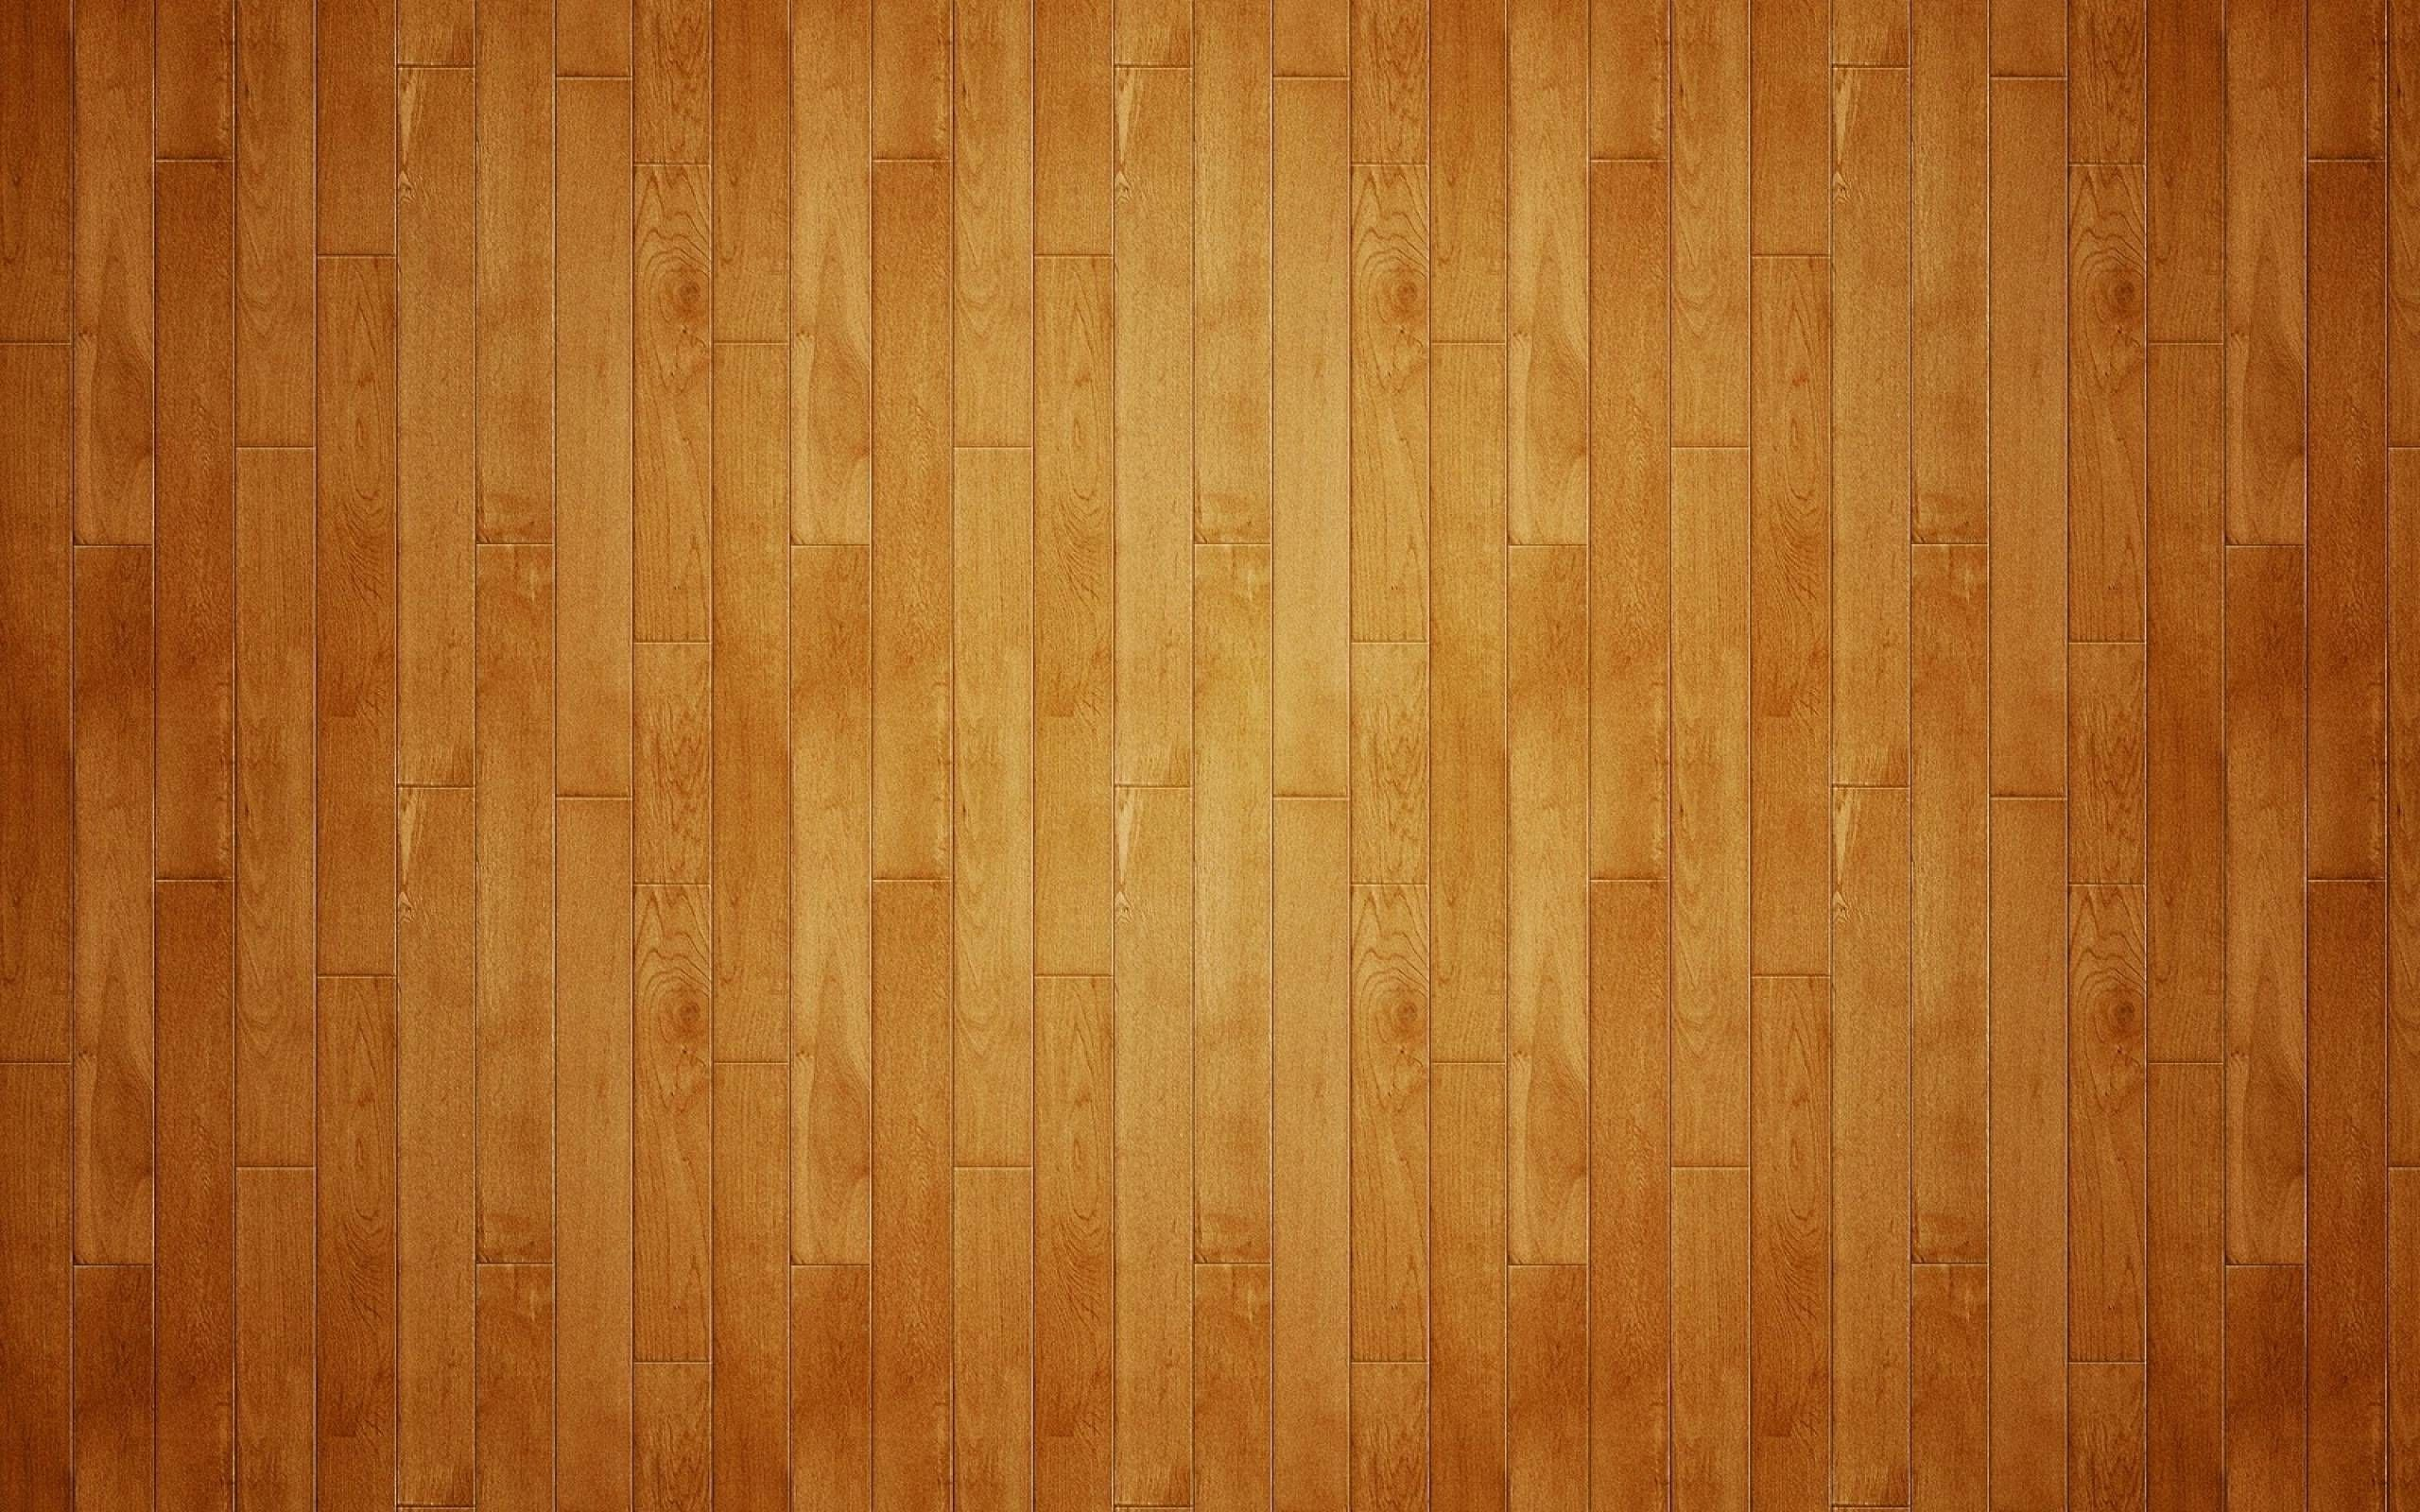 Hd Wood Backgrounds Wallpapers Freecreatives In 2020 Wood